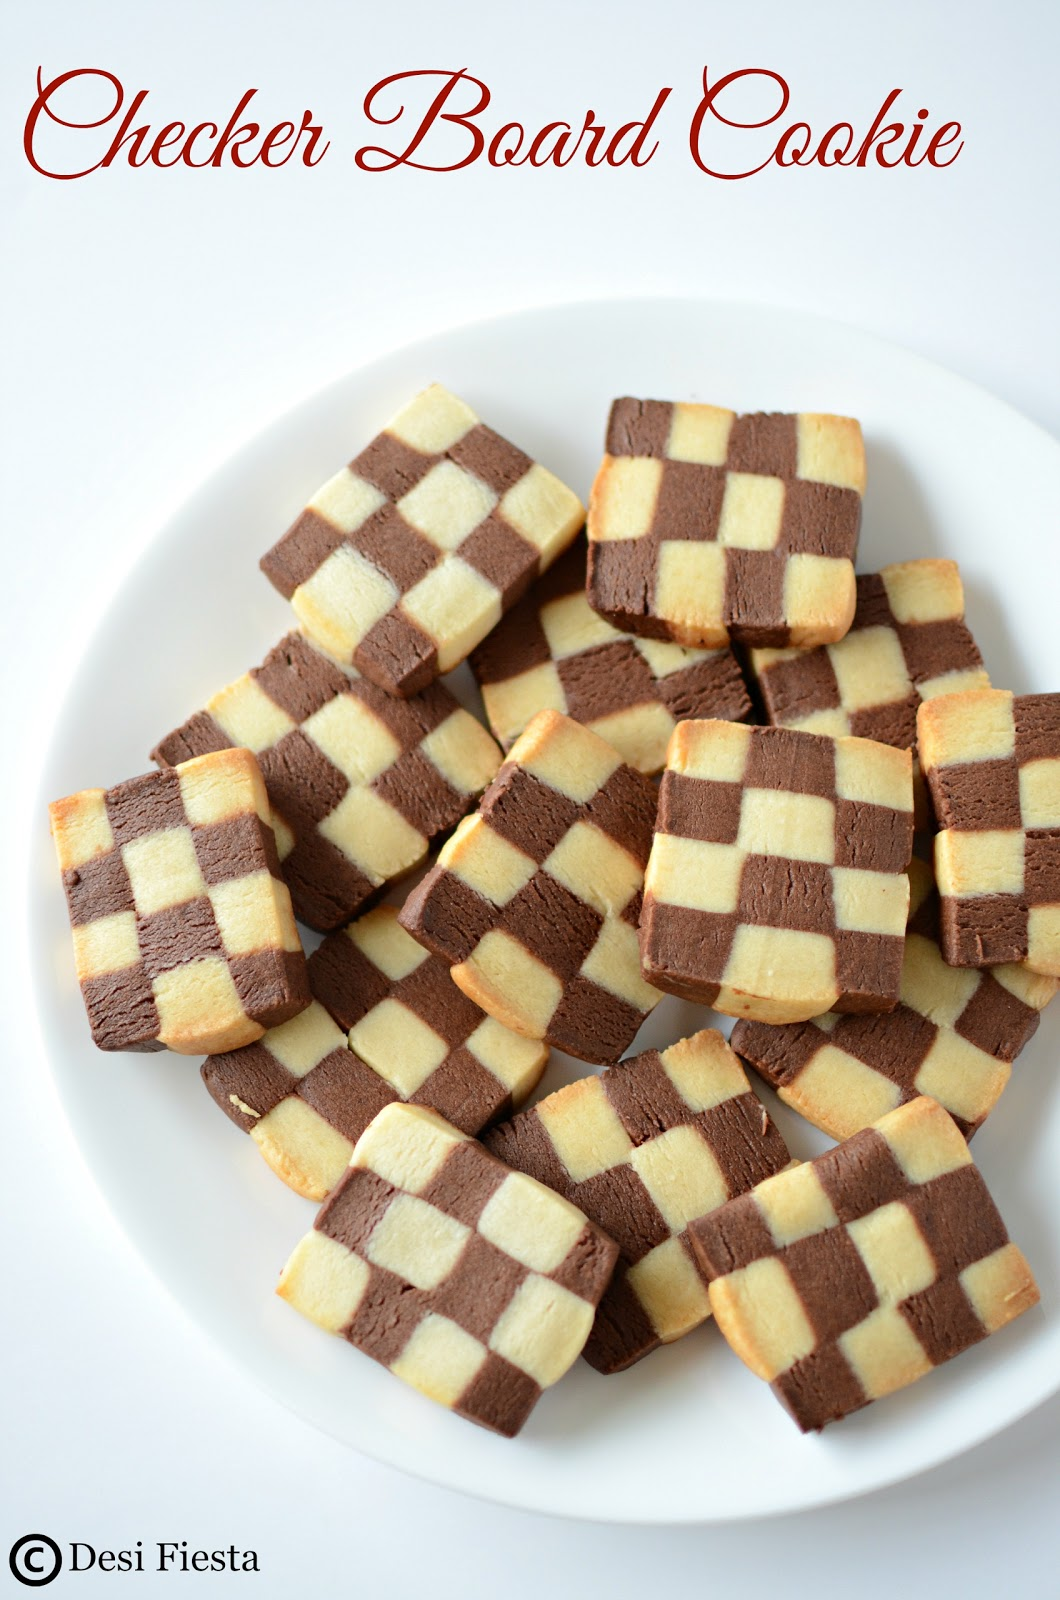 how to make checkerboard cookies